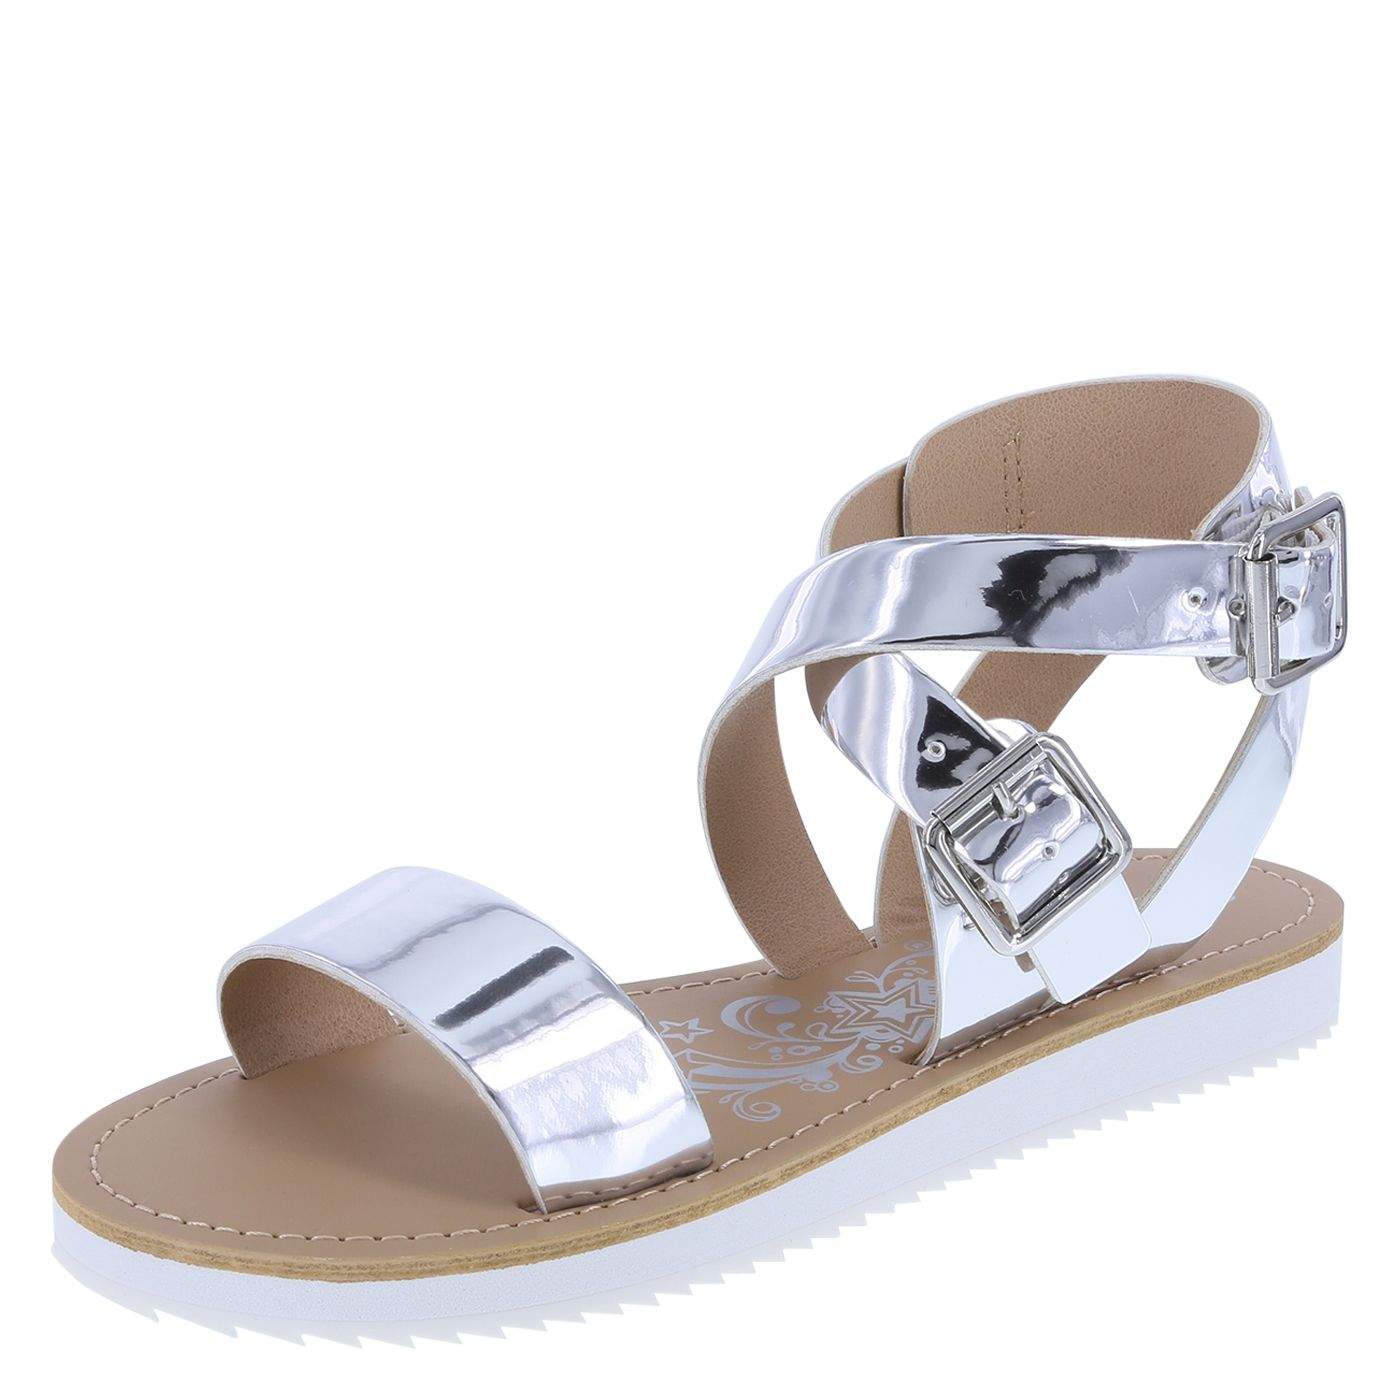 Womens sandals at payless - Women S Whatevs Flat Sandalwomen S Whatevs Flat Sandal